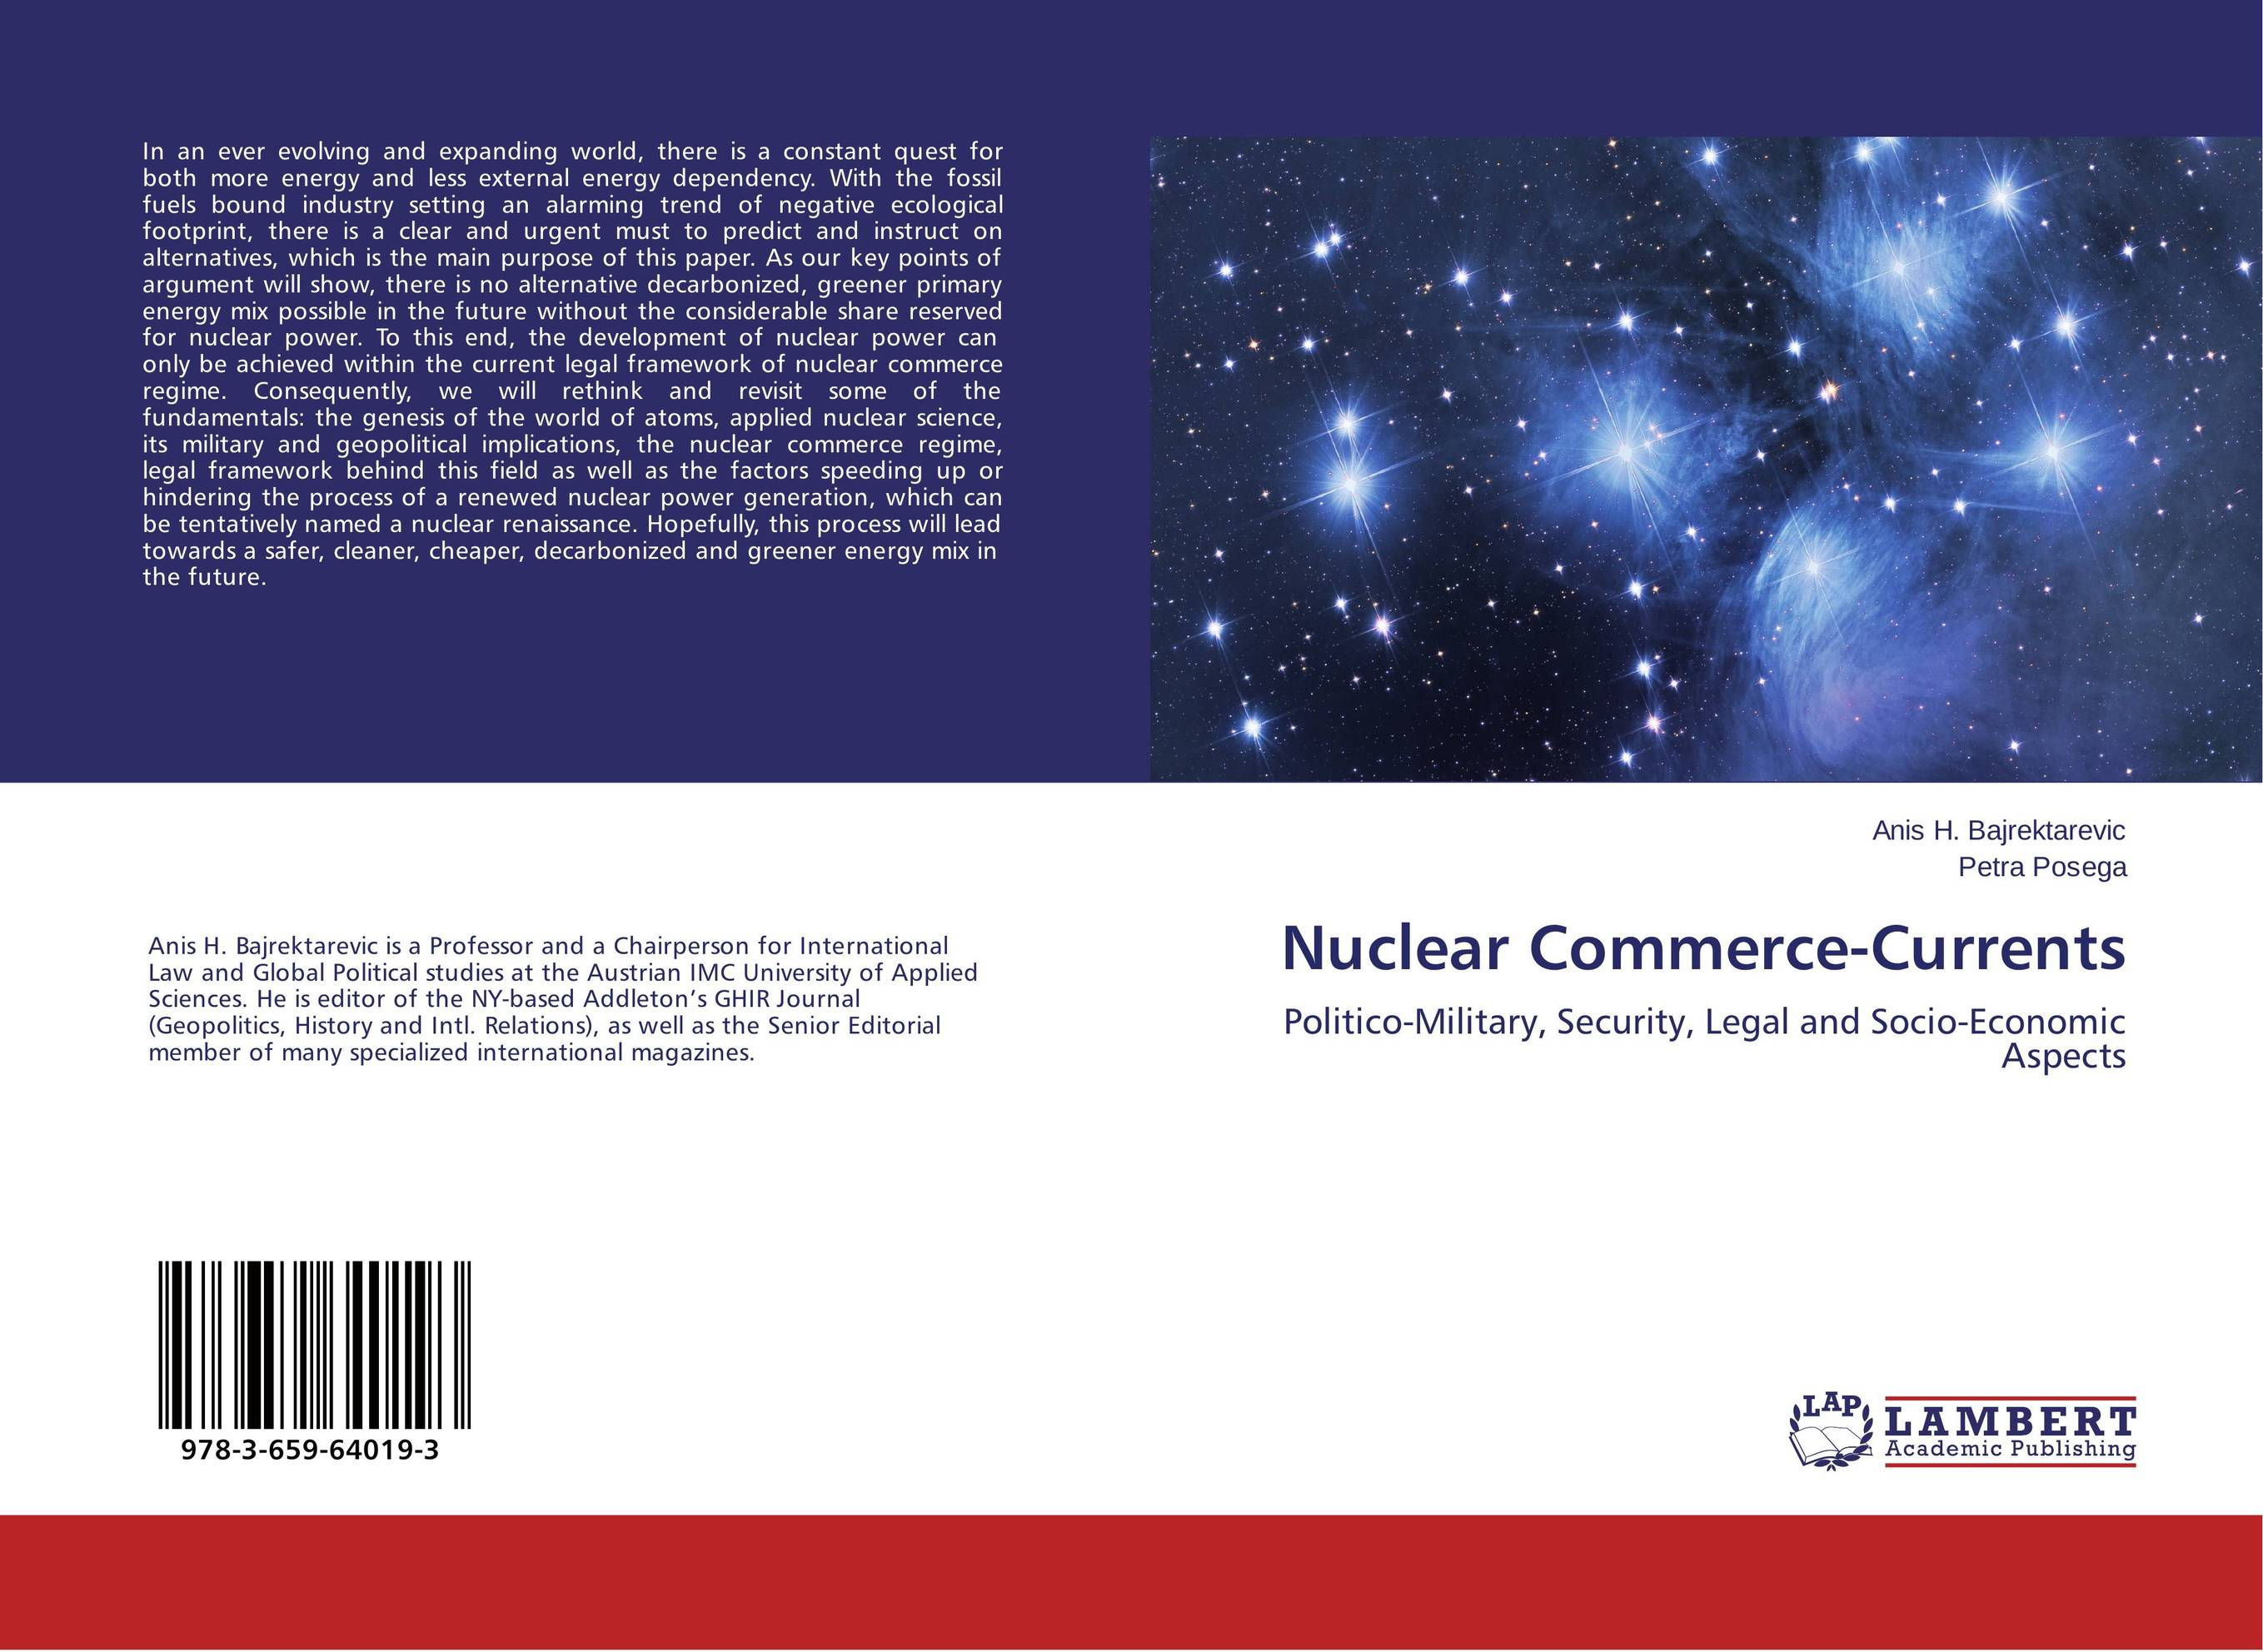 Nuclear Commerce-Currents lidiya strautman introduction to the world of nuclear physics